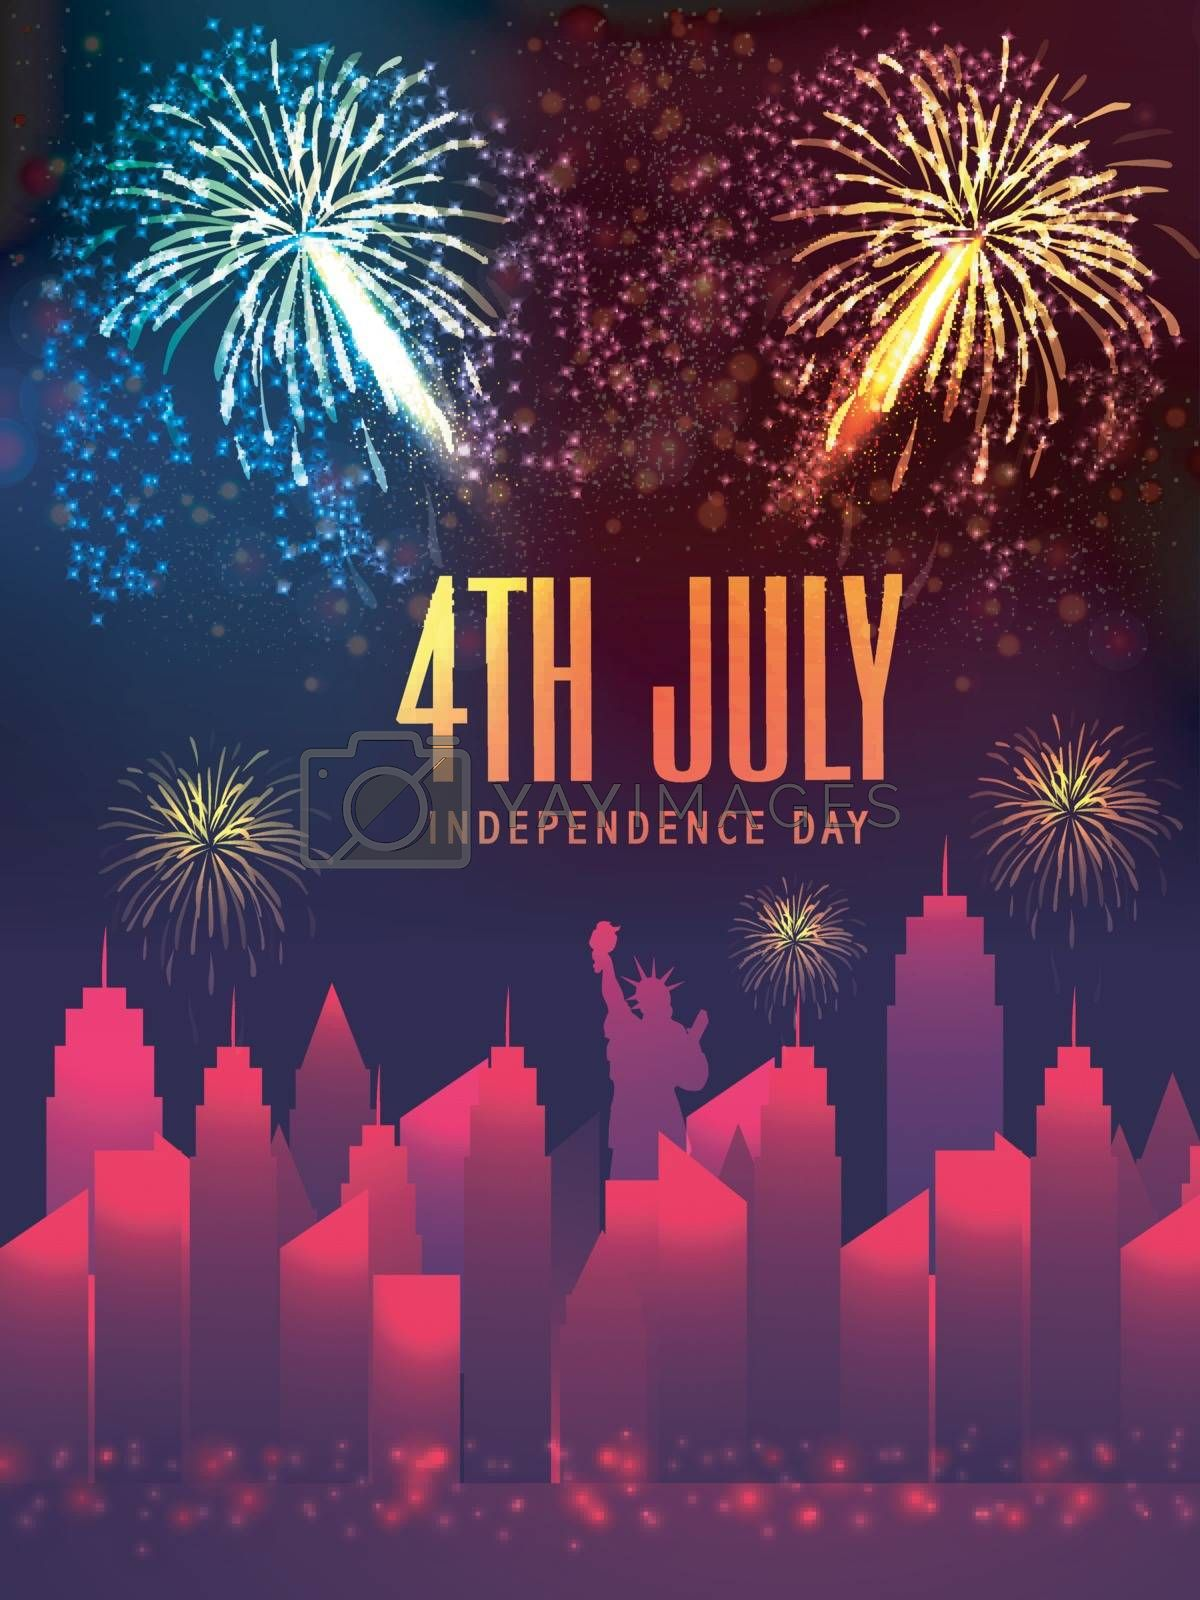 Template, Banner or Flyer design with city view and firework explosion for 4th of July, American Independence Day celebration.